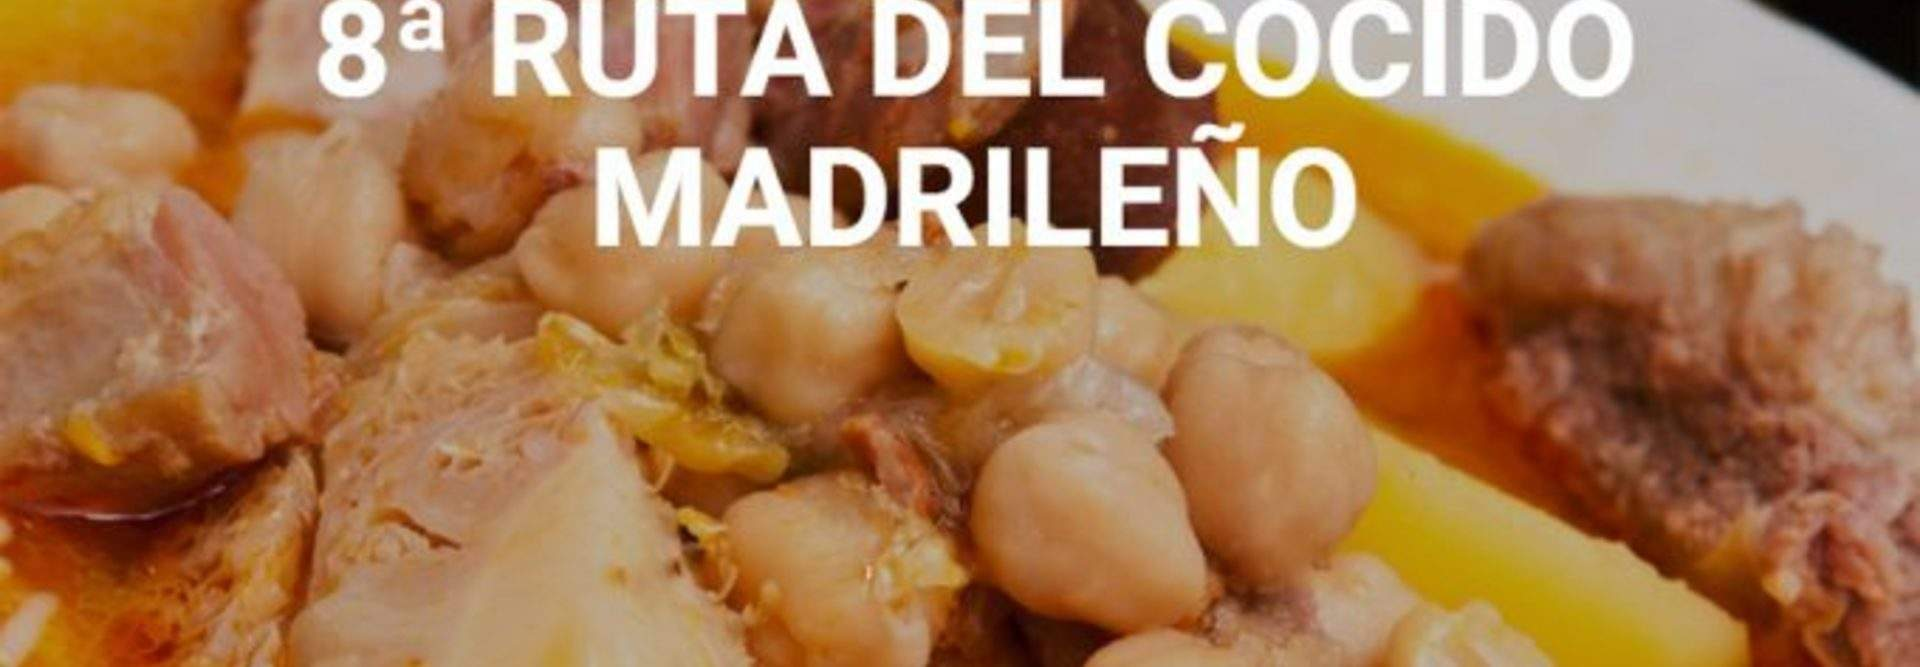 Home ruta cocido mad2018 680x434